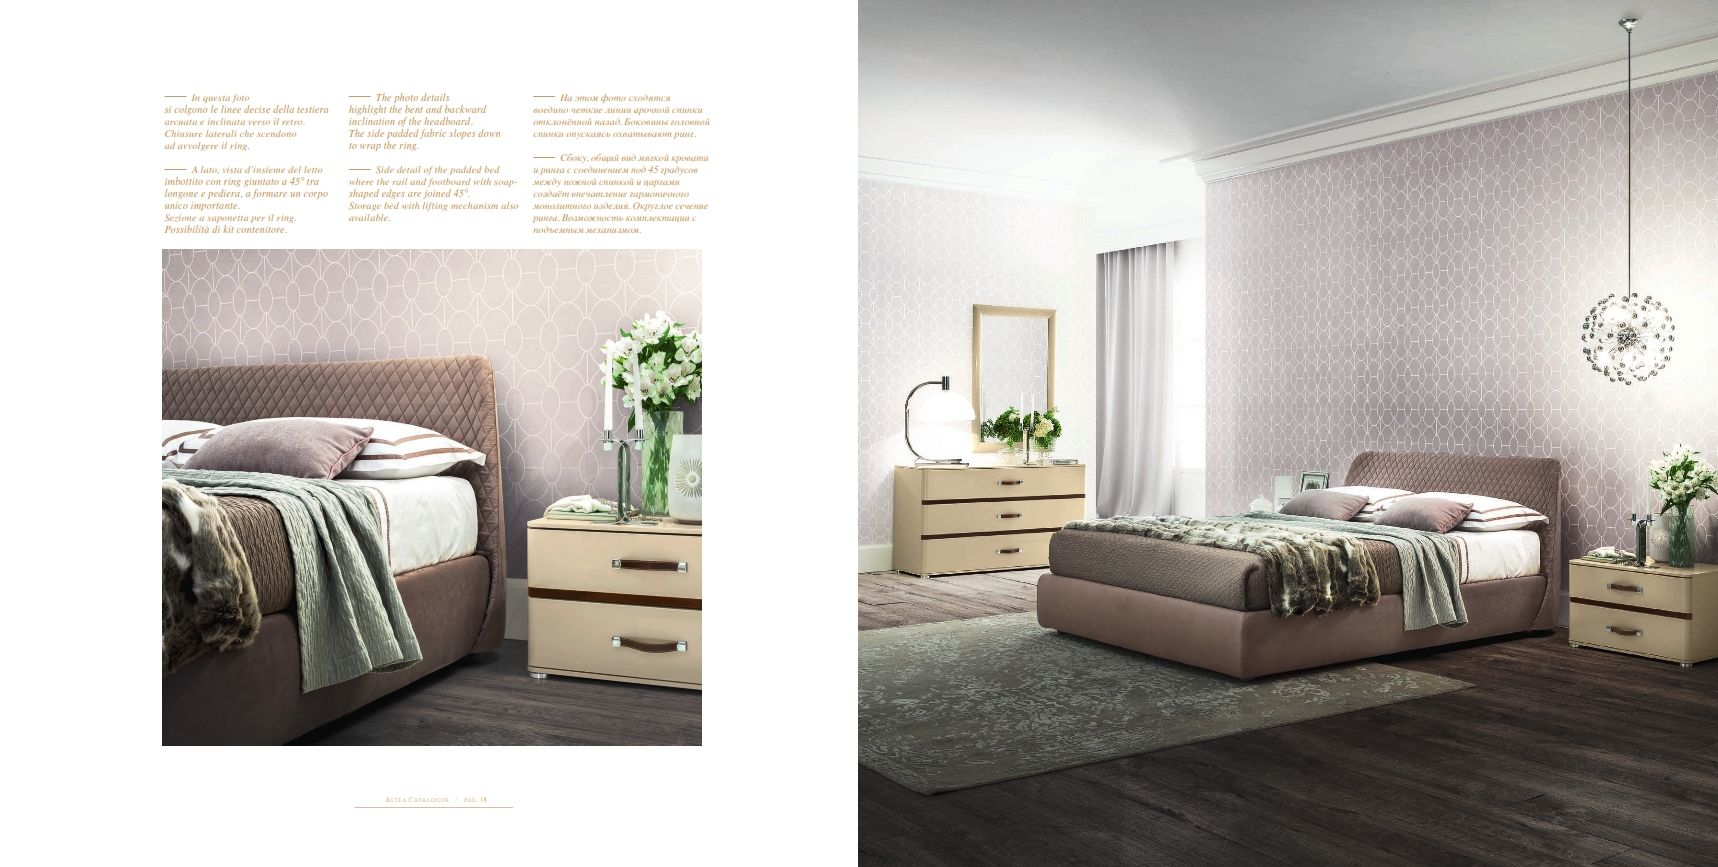 Chambres coucher chambre coucher camelgroup kleo for Chambre a coucher 93